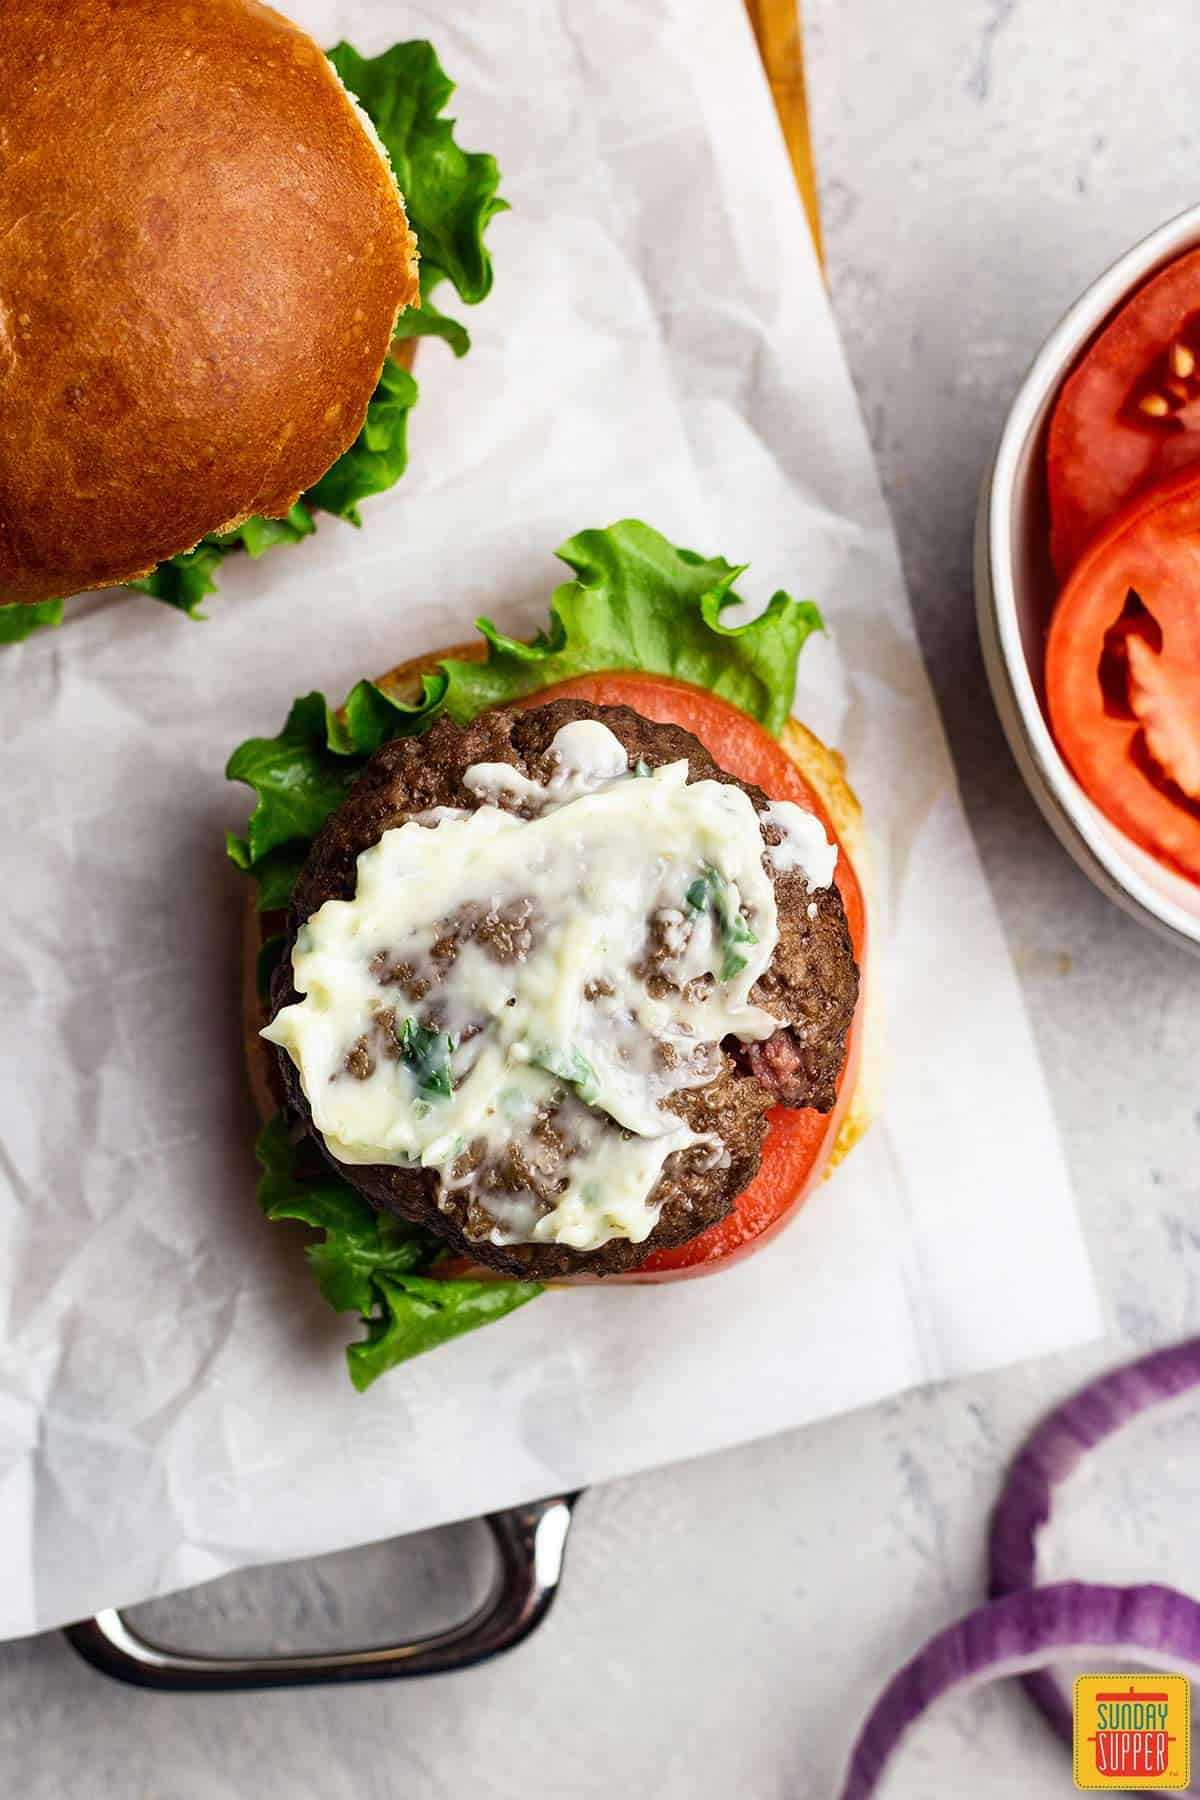 Open face air fryer burger with garlic butter spread